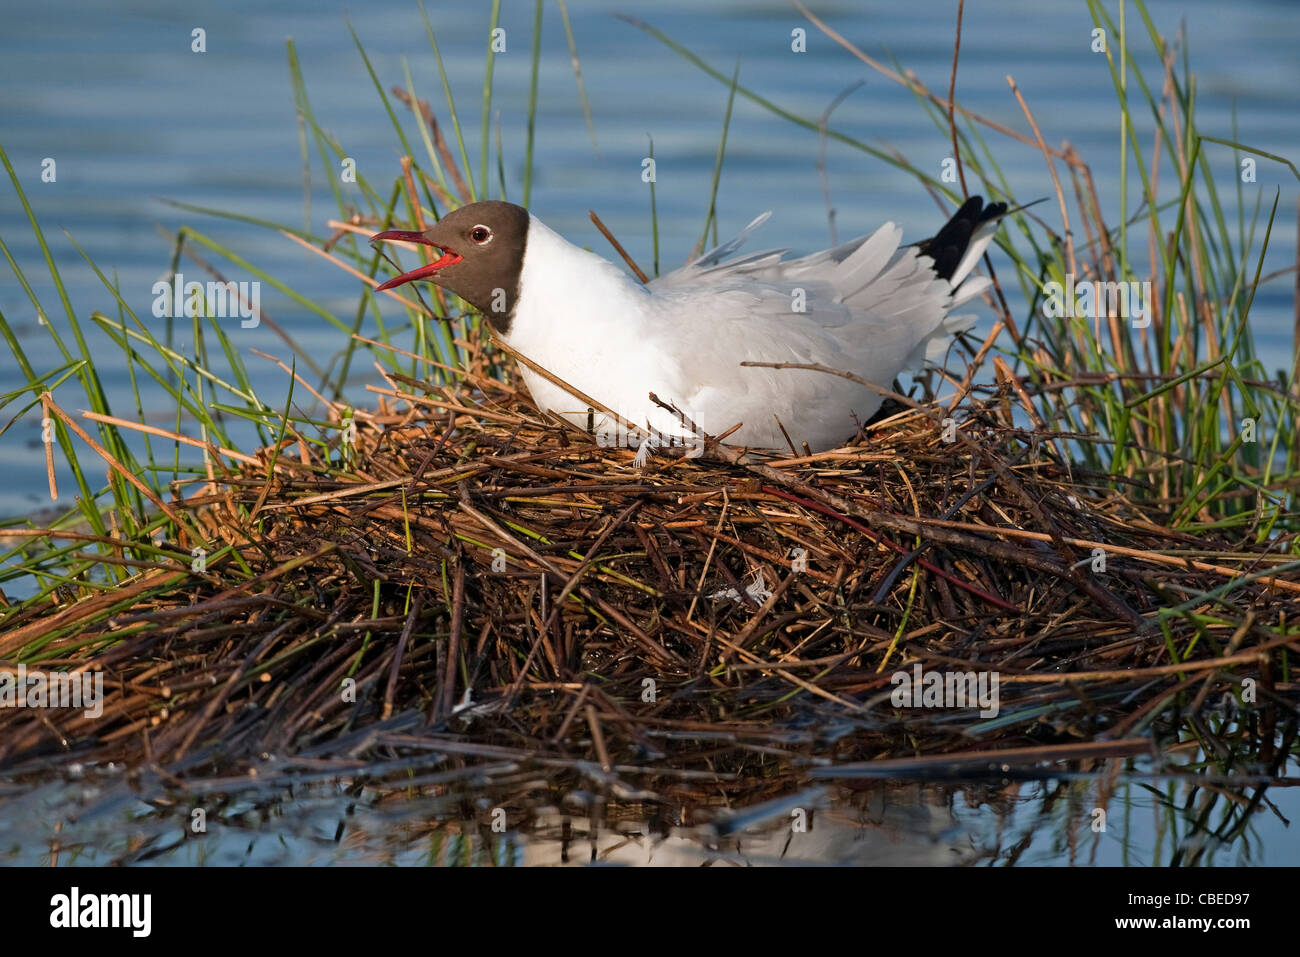 Black-headed Gull (Larus ridibundus), adult on nest, calling. Grote peel National Park, Netherlands. - Stock Image